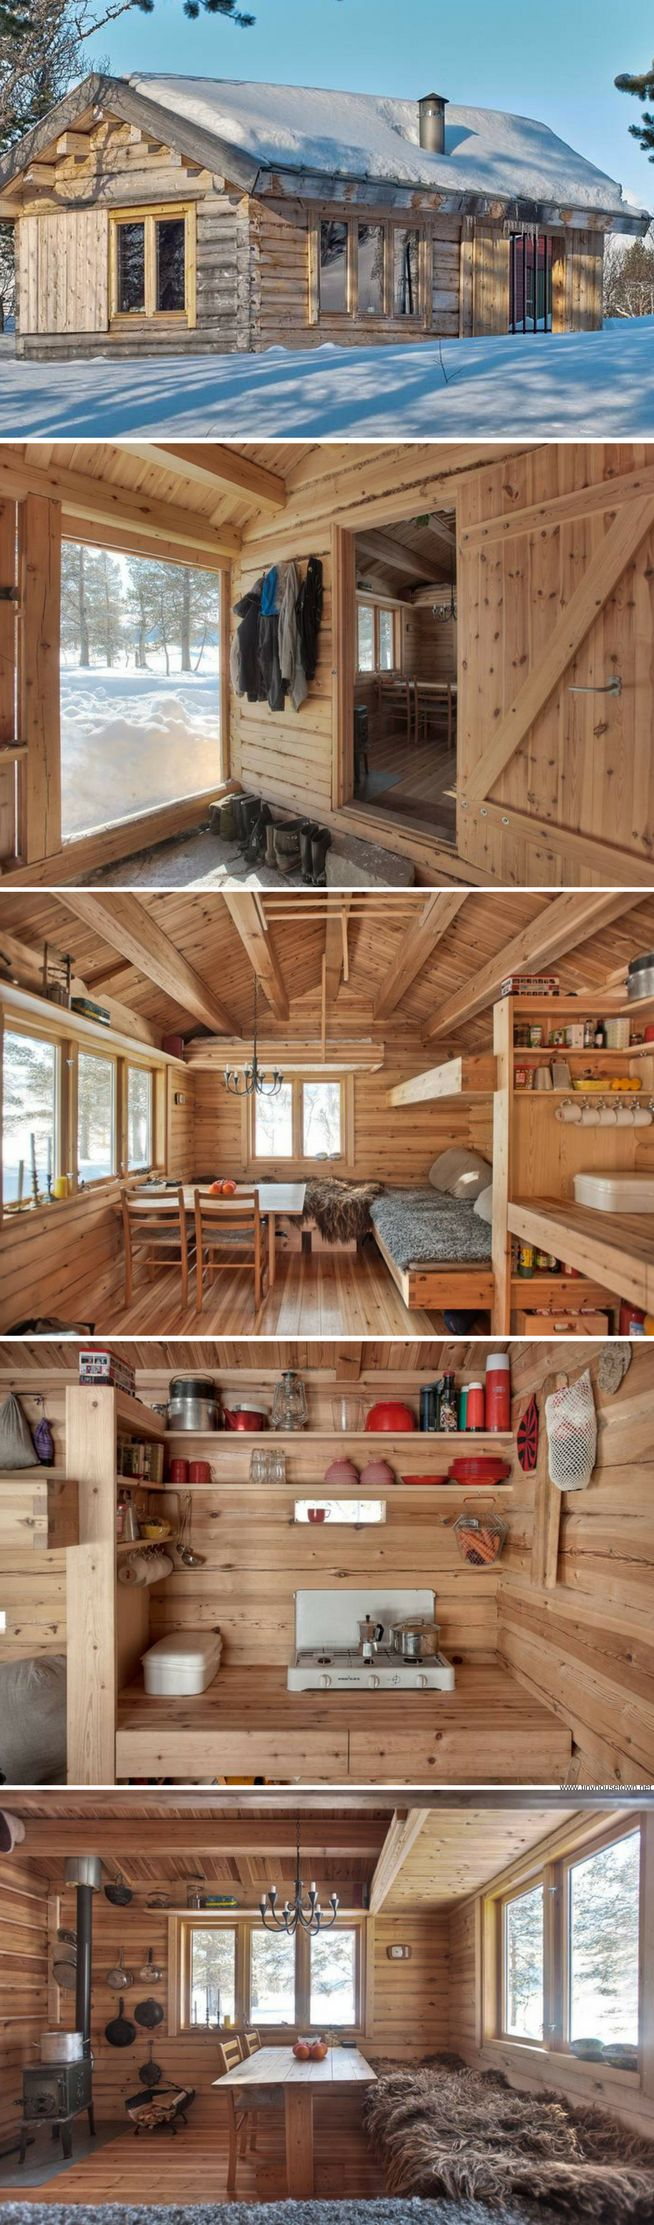 A 118 sq ft cabin in norway cabins and cottages for Pictures of small hunting cabins